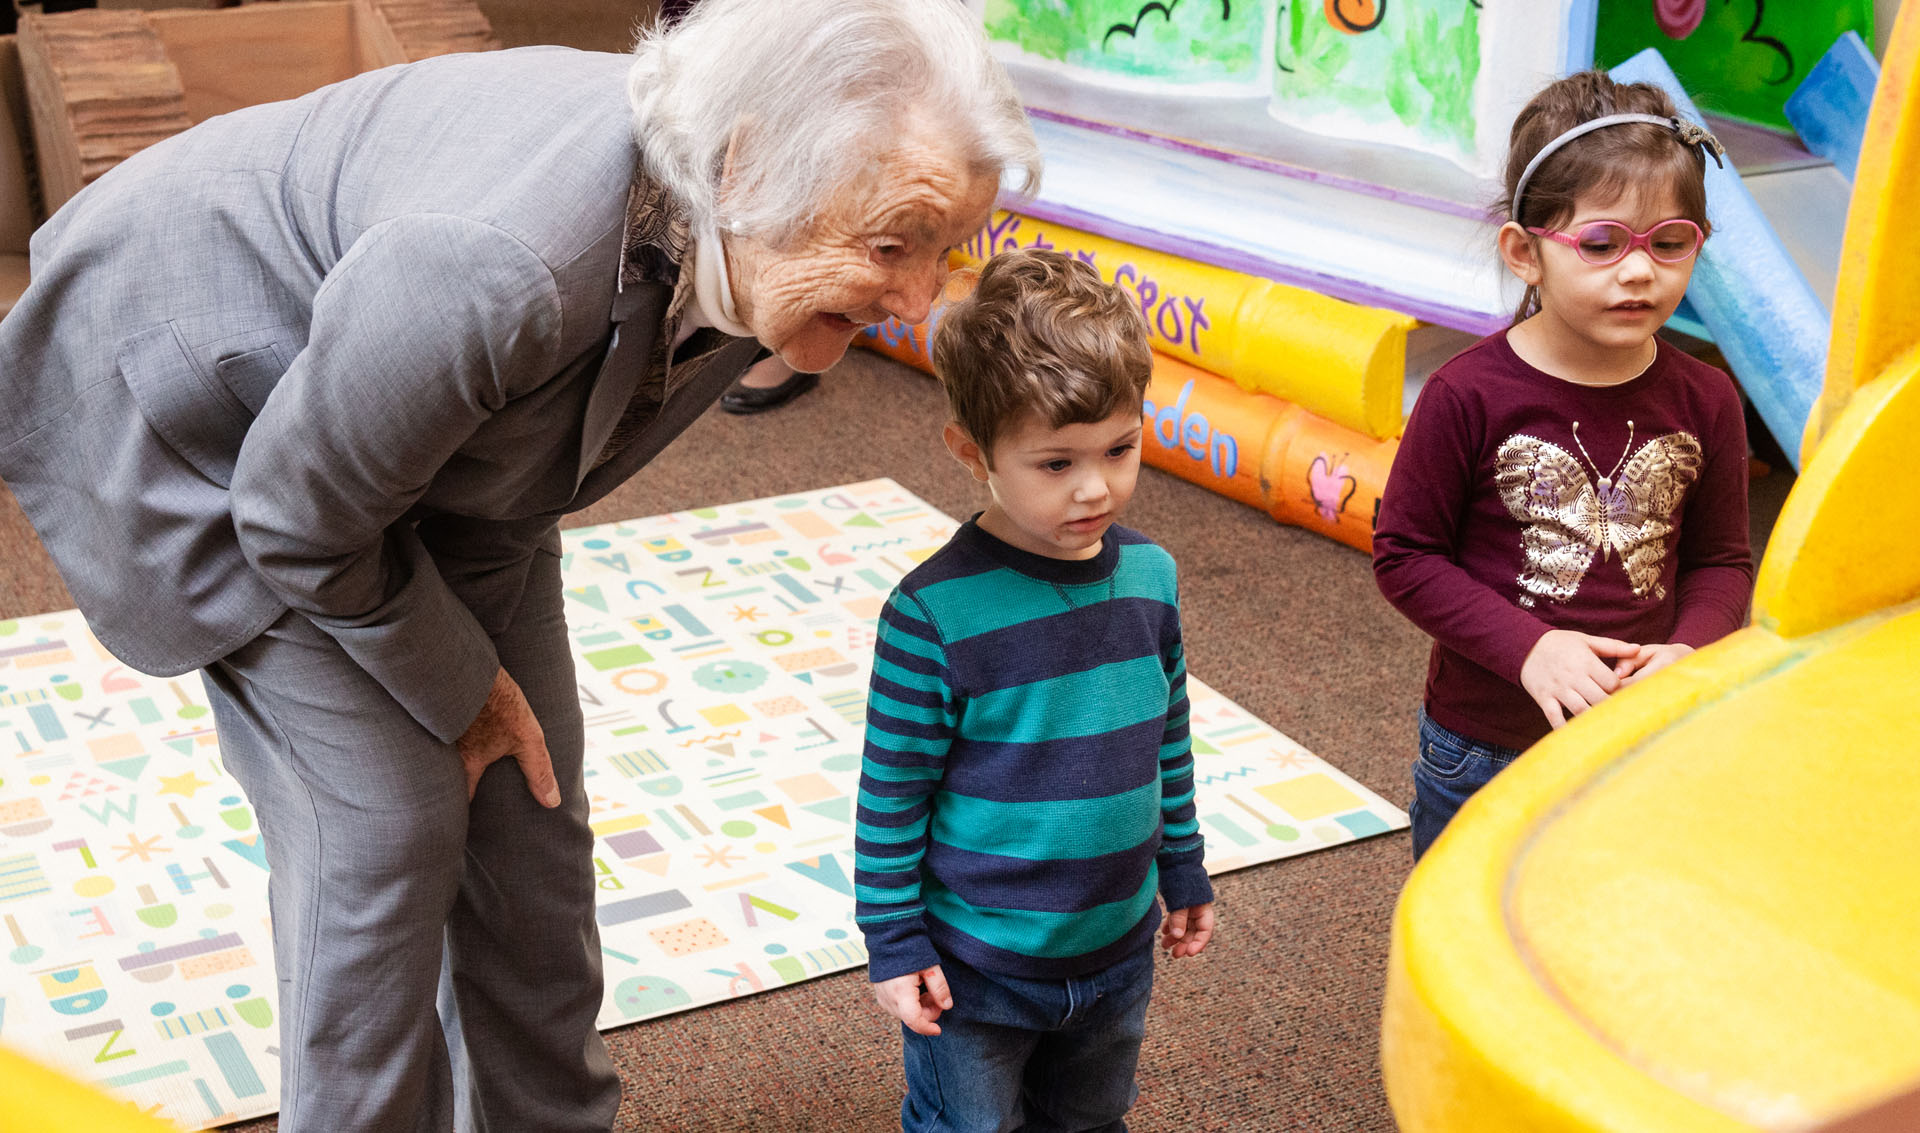 An elderly woman bent over smiling next to two small children in a daycare